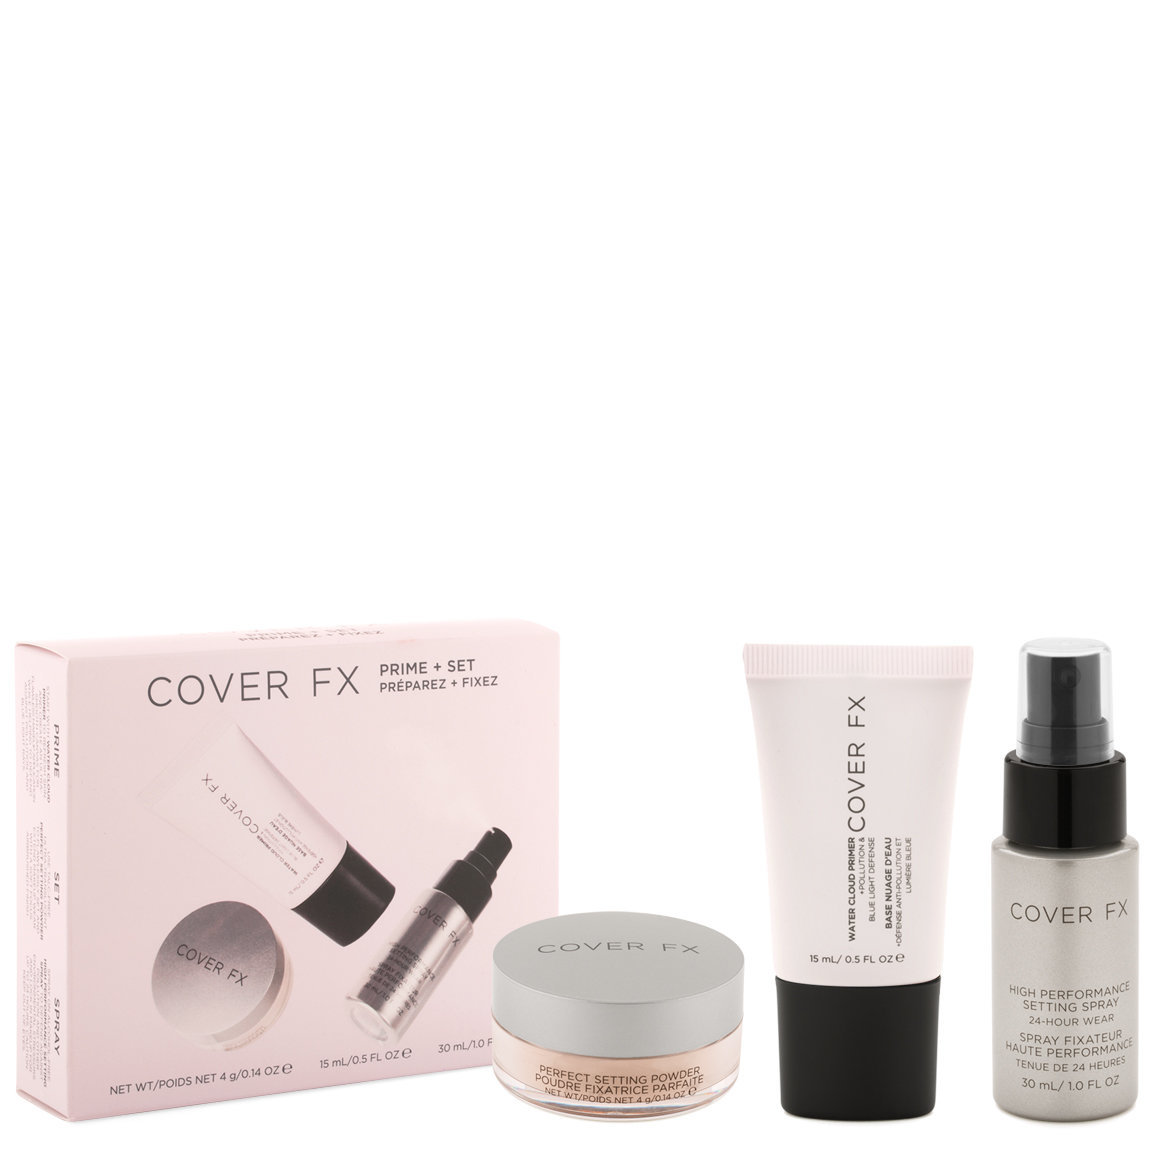 Cover FX Prime + Set Complexion Kit product smear.